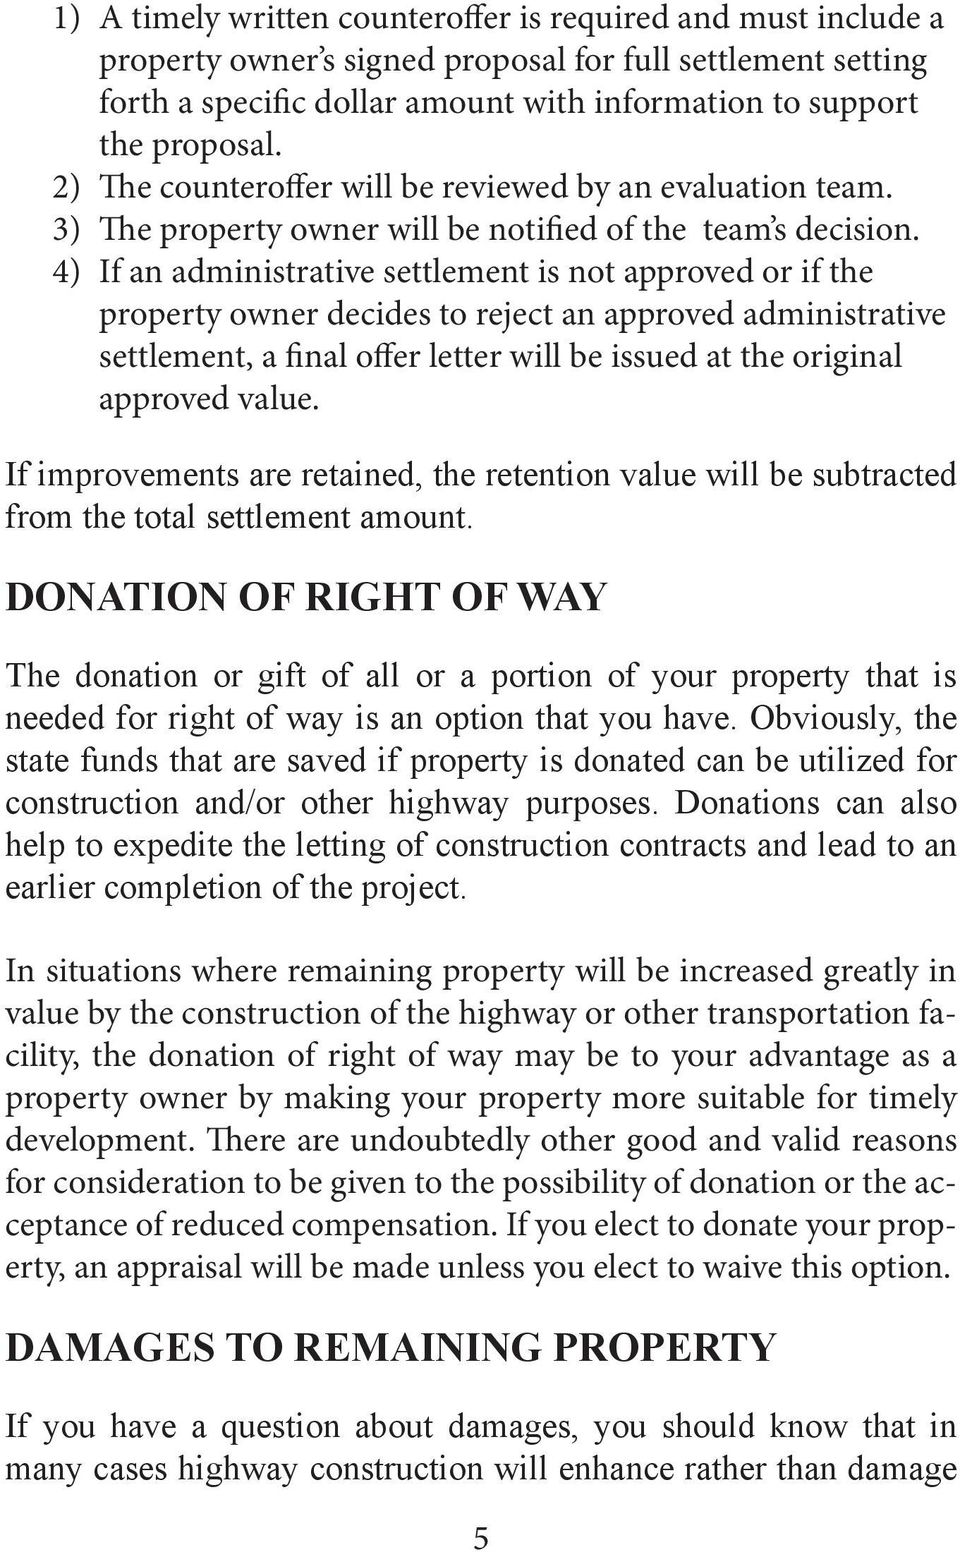 4) If an administrative settlement is not approved or if the property owner decides to reject an approved administrative settlement, a final offer letter will be issued at the original approved value.